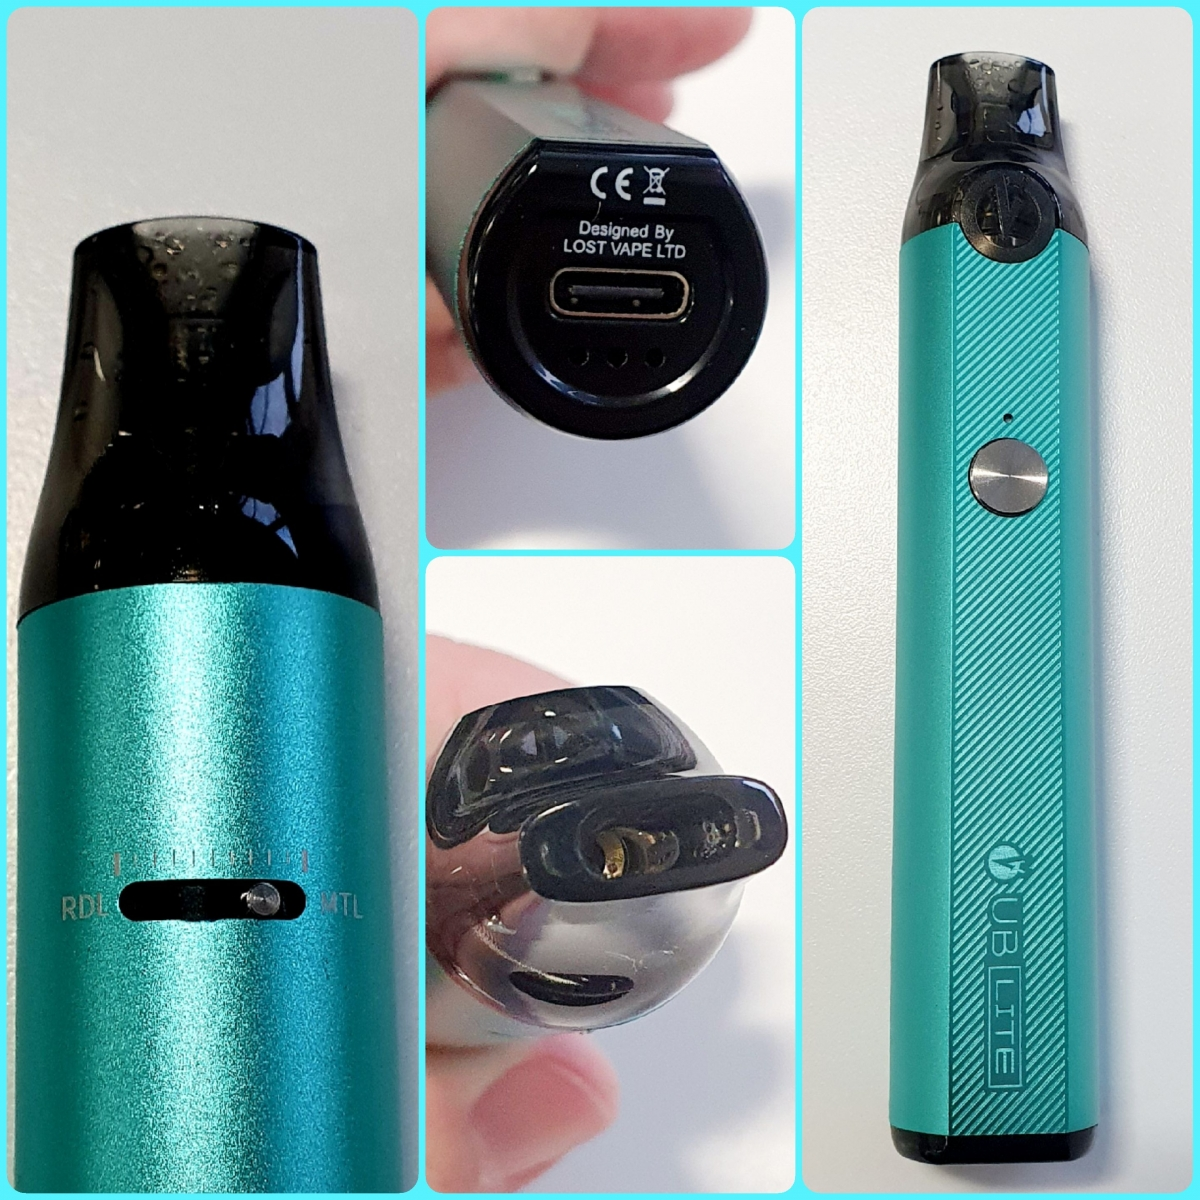 Lost Vape UB Lite Pod Kit close-ups